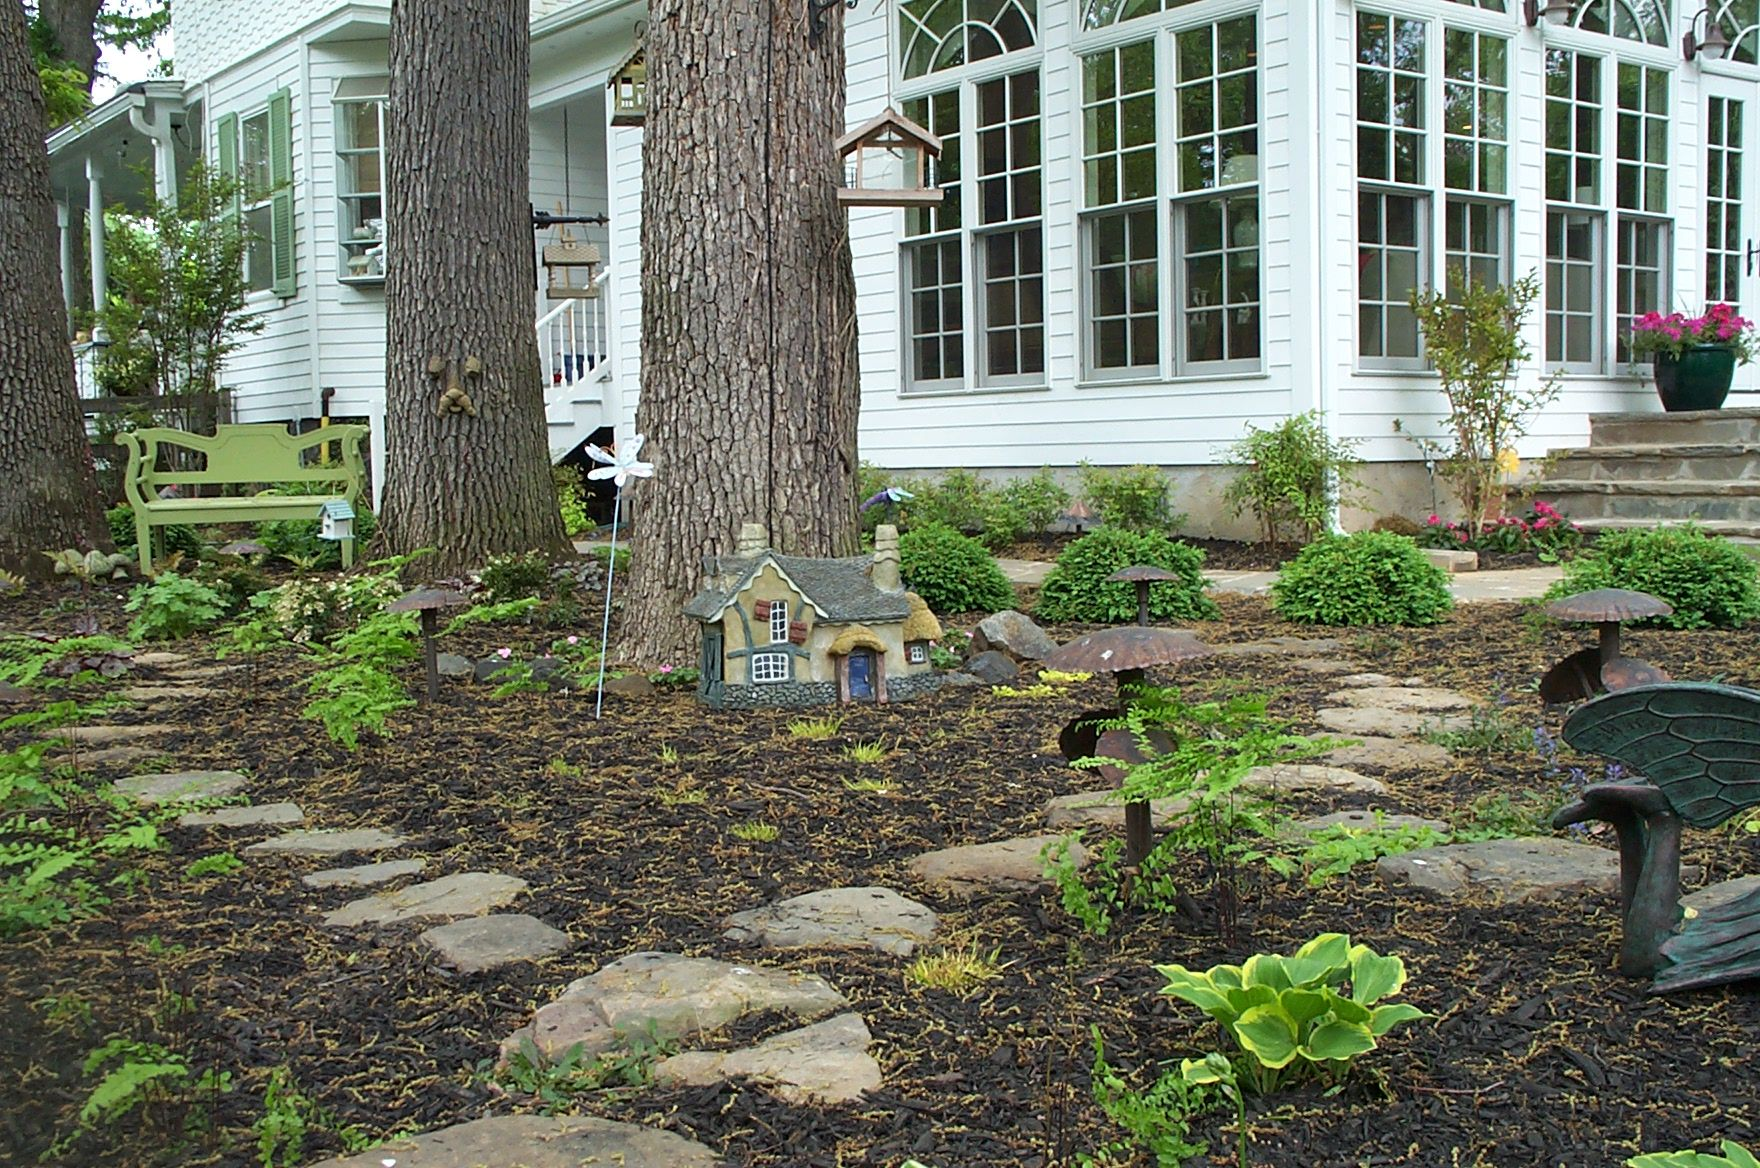 Fairy garden Garden Yard Ideas, Garden Projects, Design Projects, Design  Ideas, Fairies